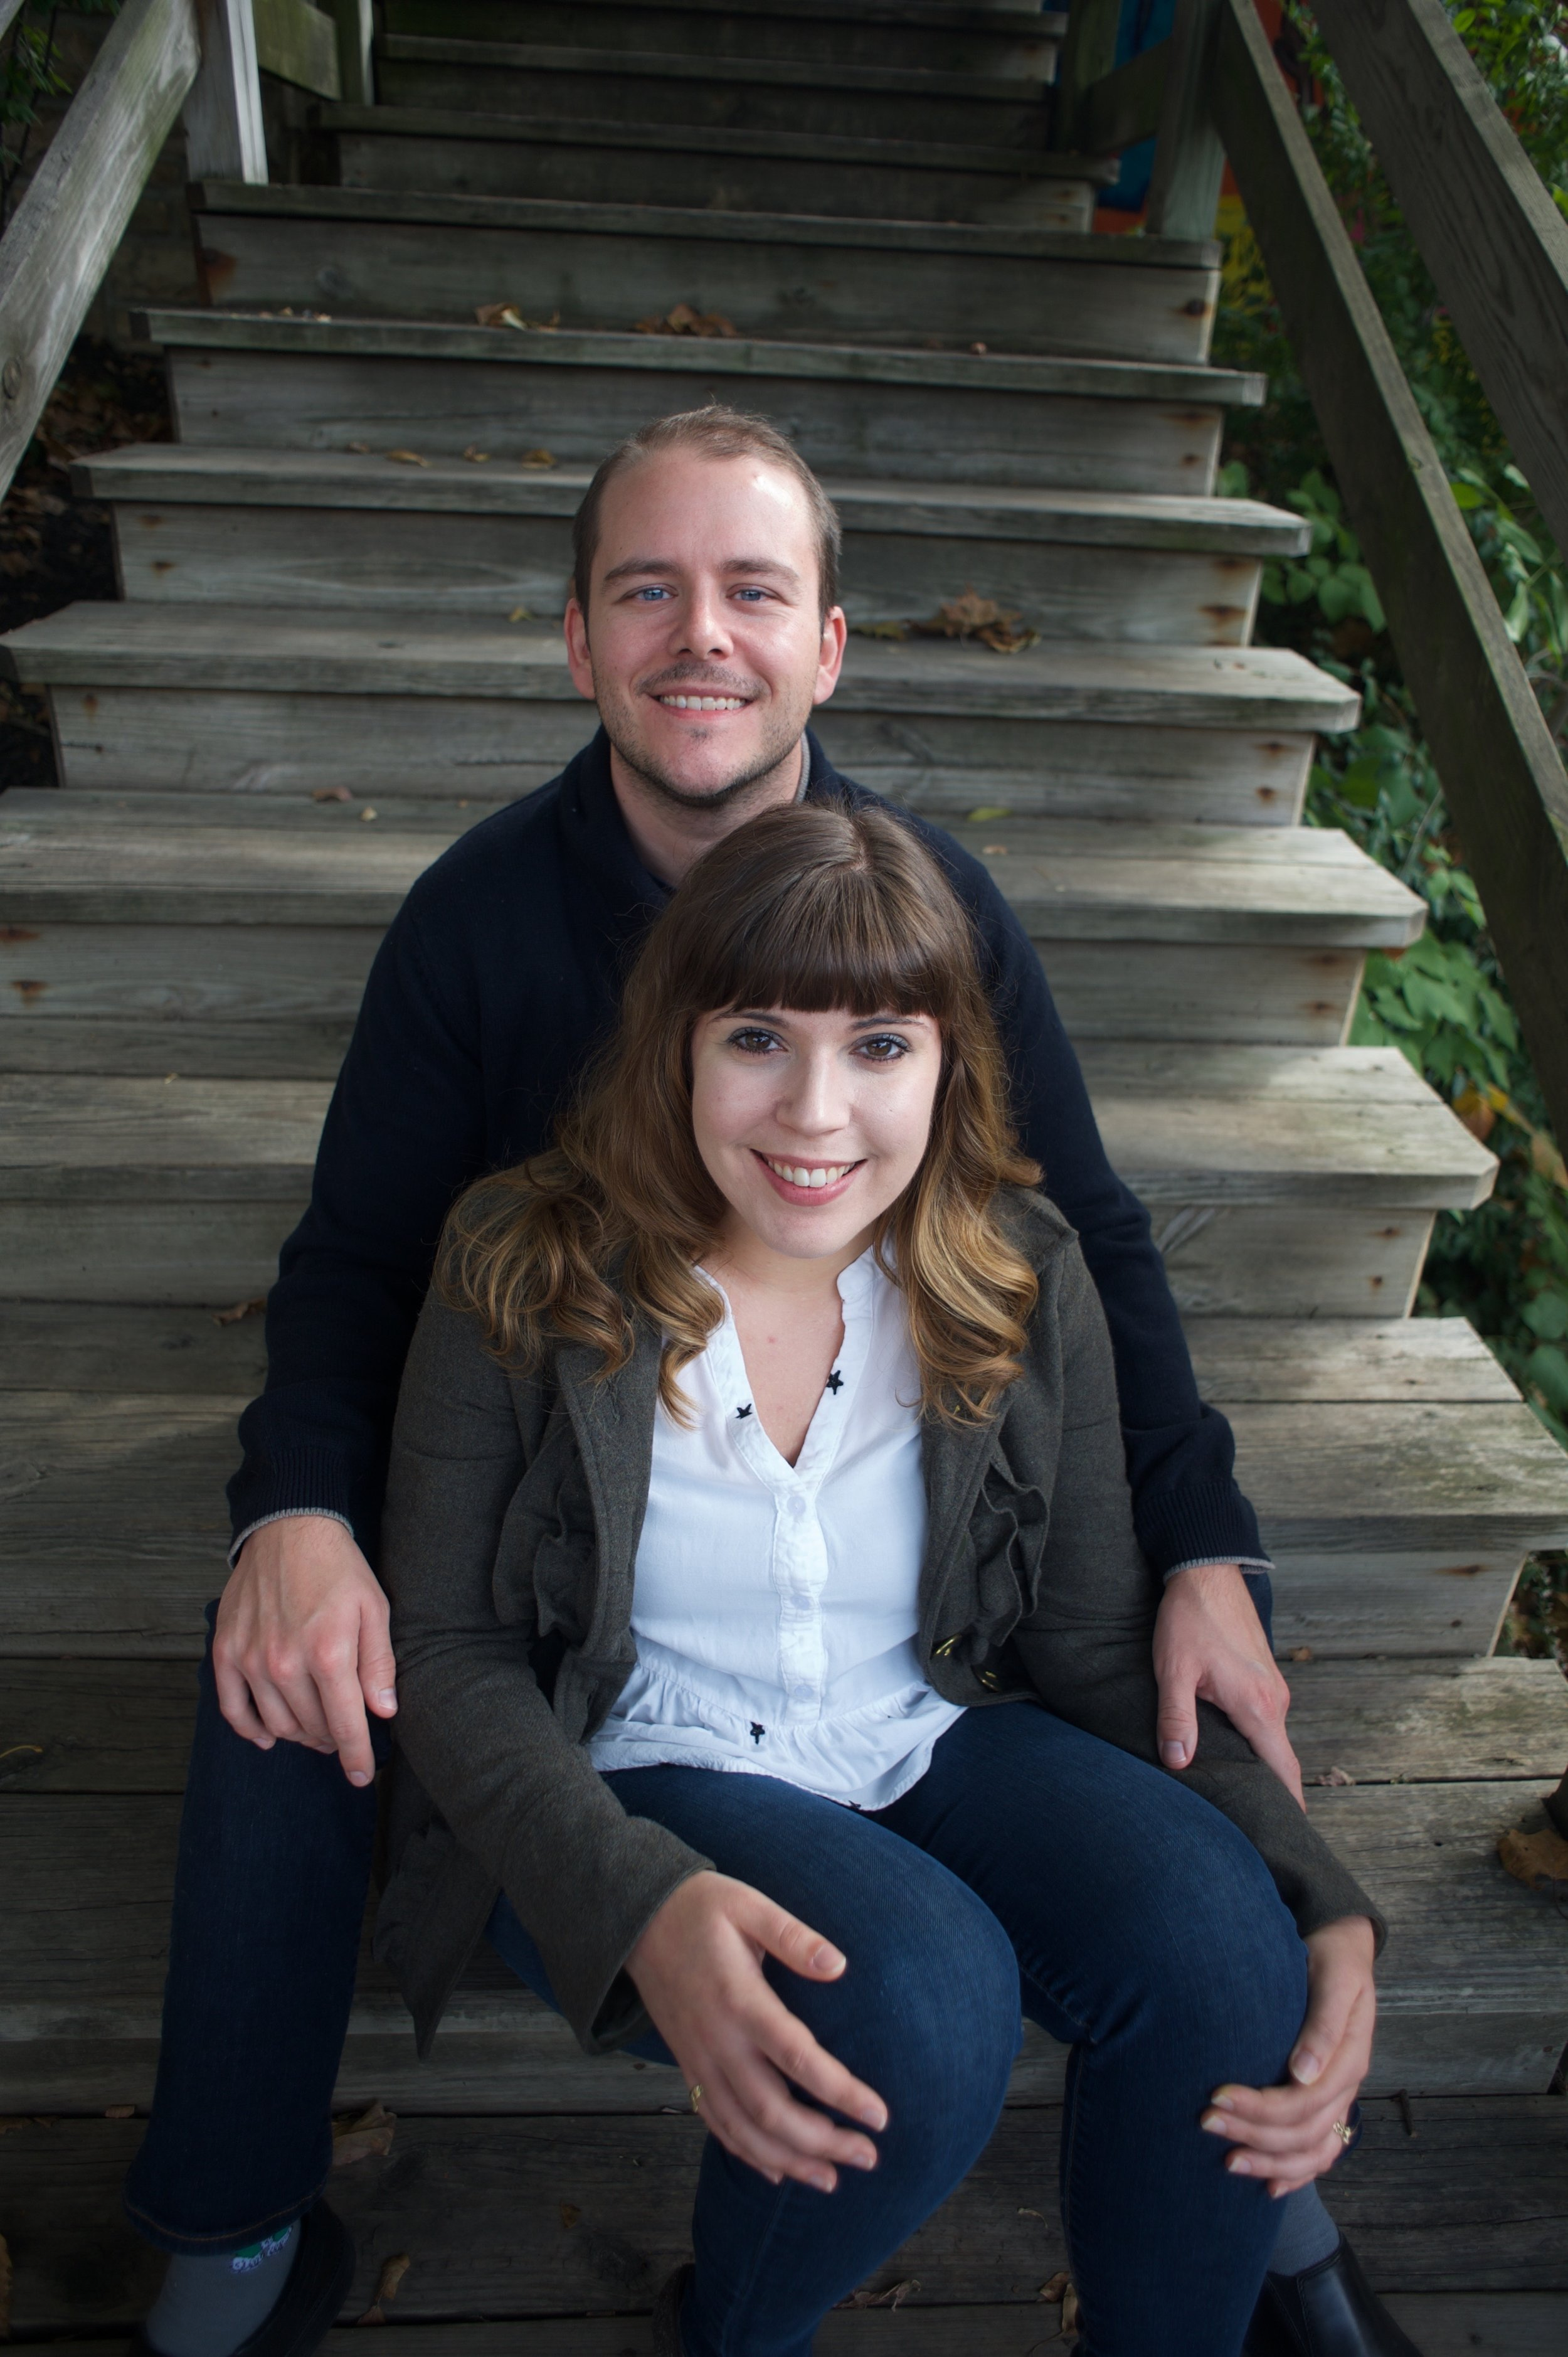 You can view Kristen and Jon's adoption profile here: http://bit.ly/2vY88p7 .